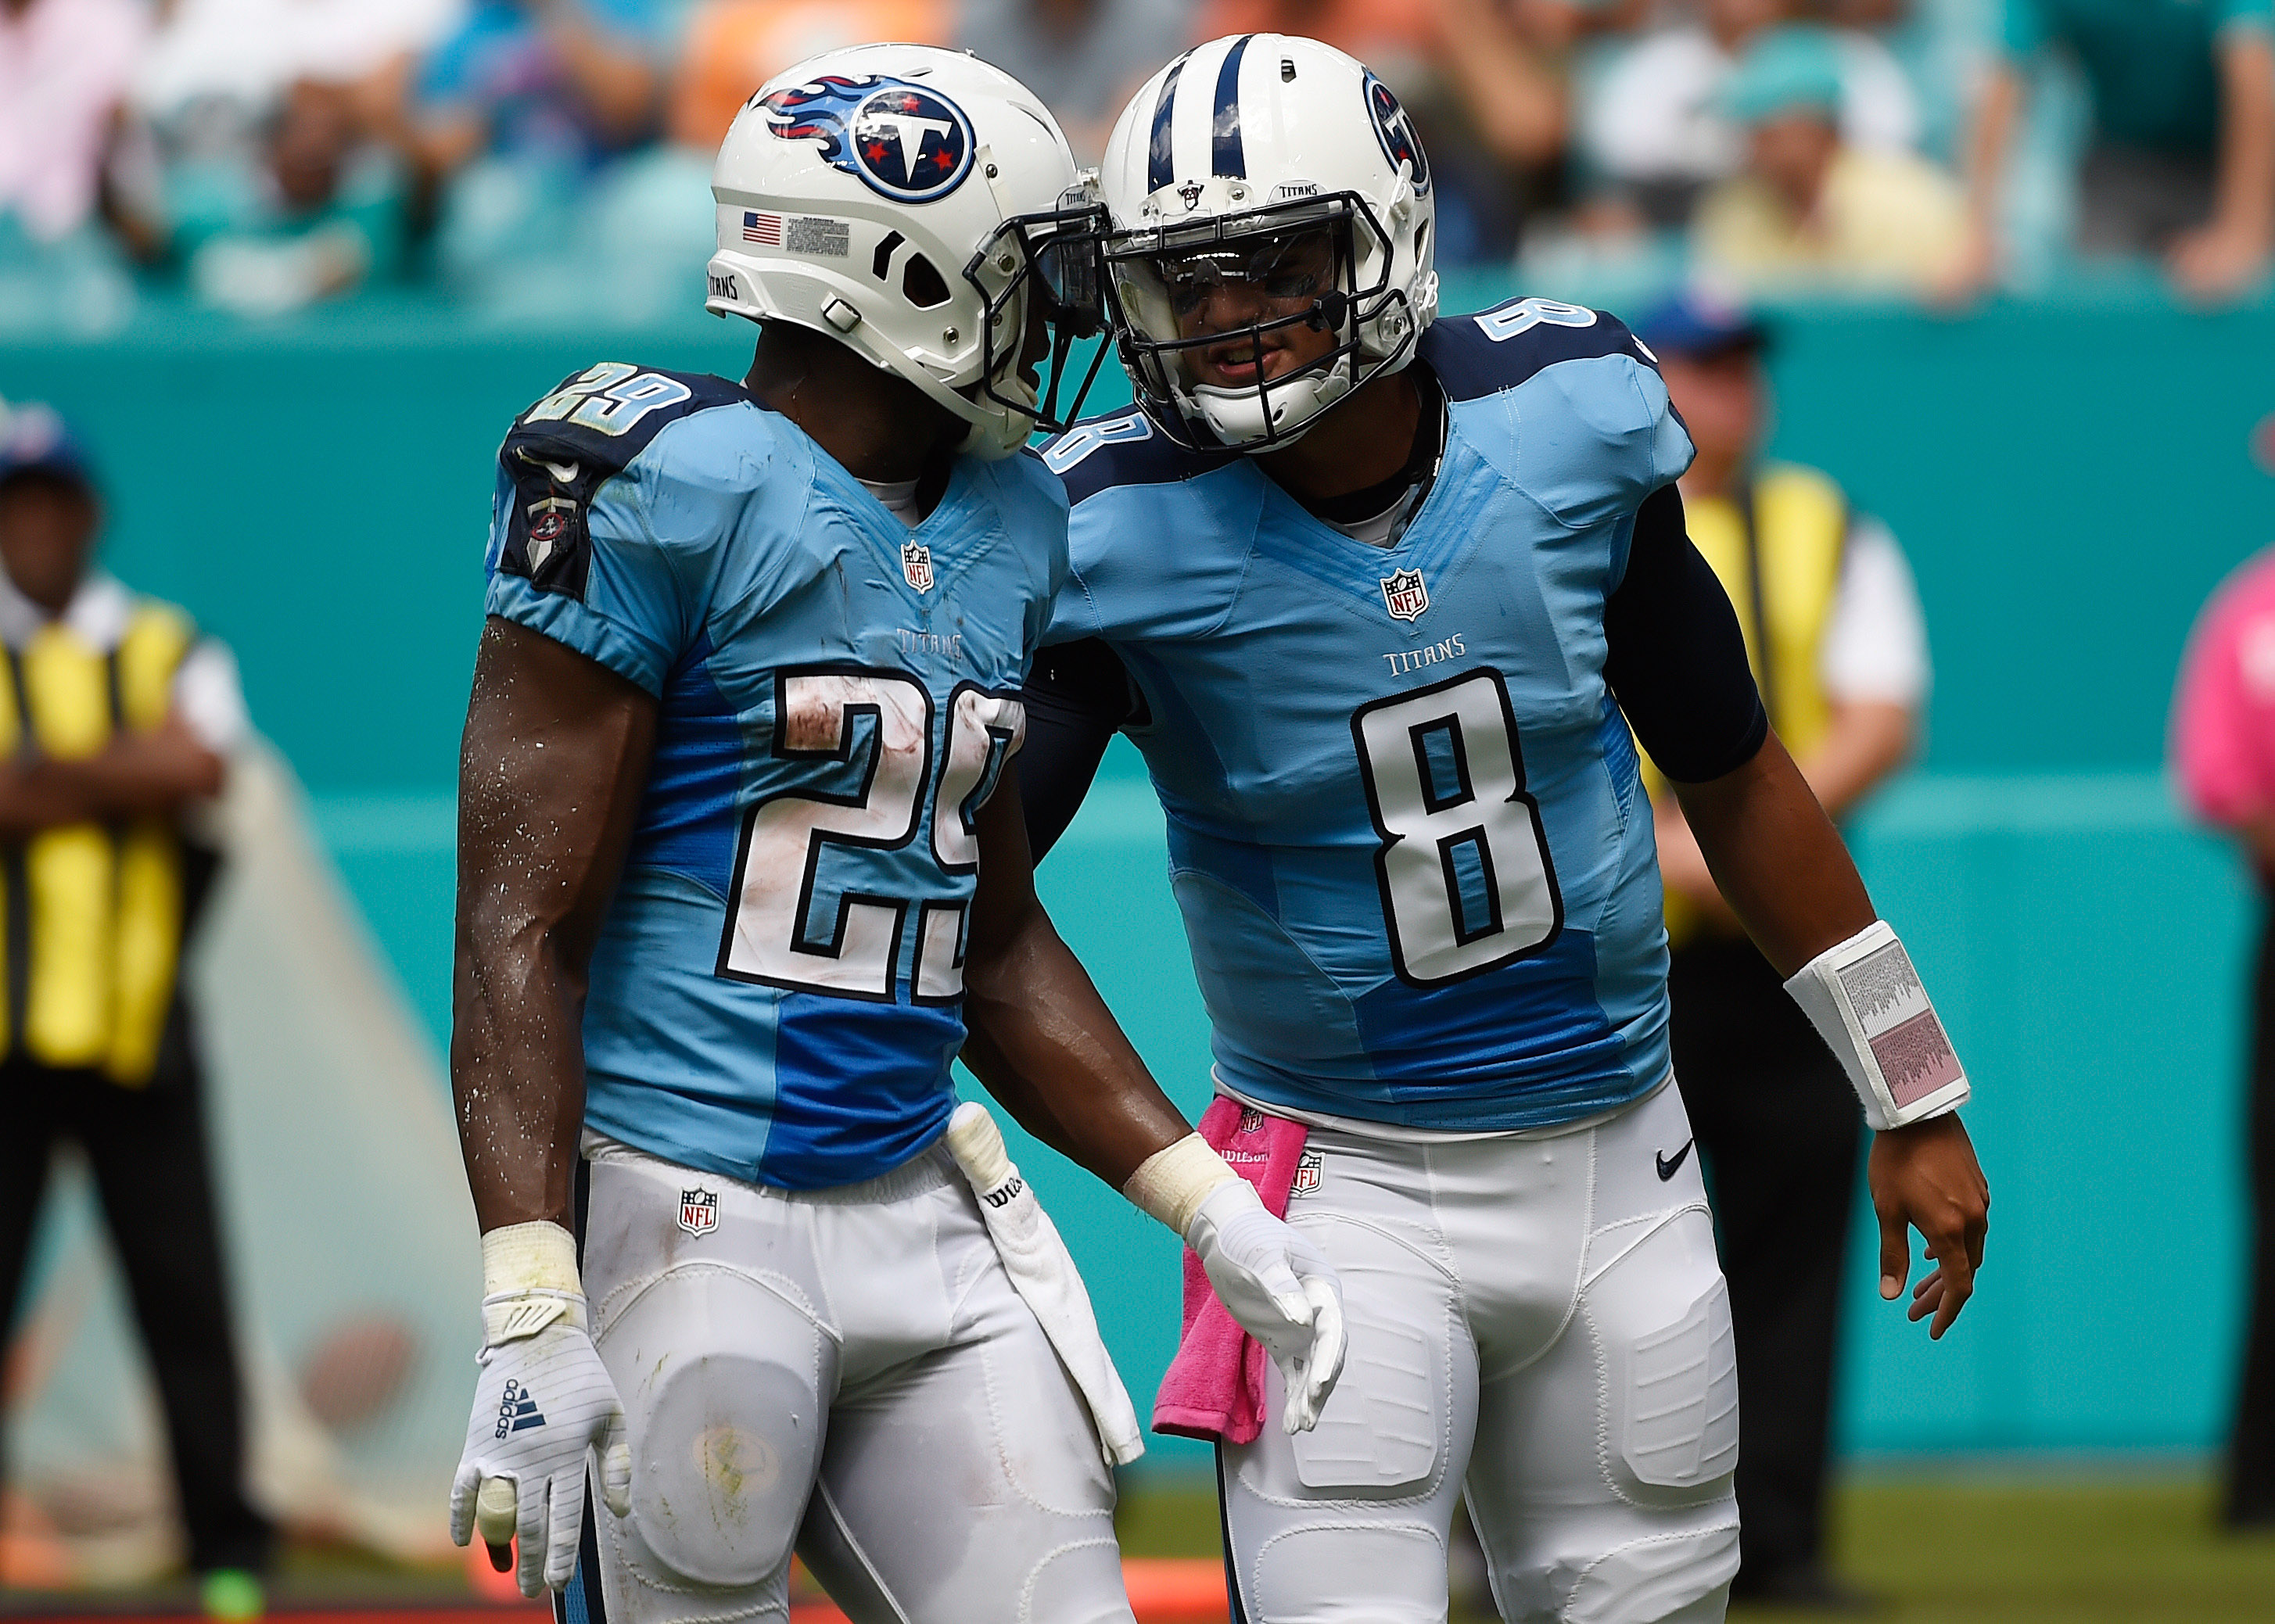 9611649-nfl-tennessee-titans-at-miami-dolphins